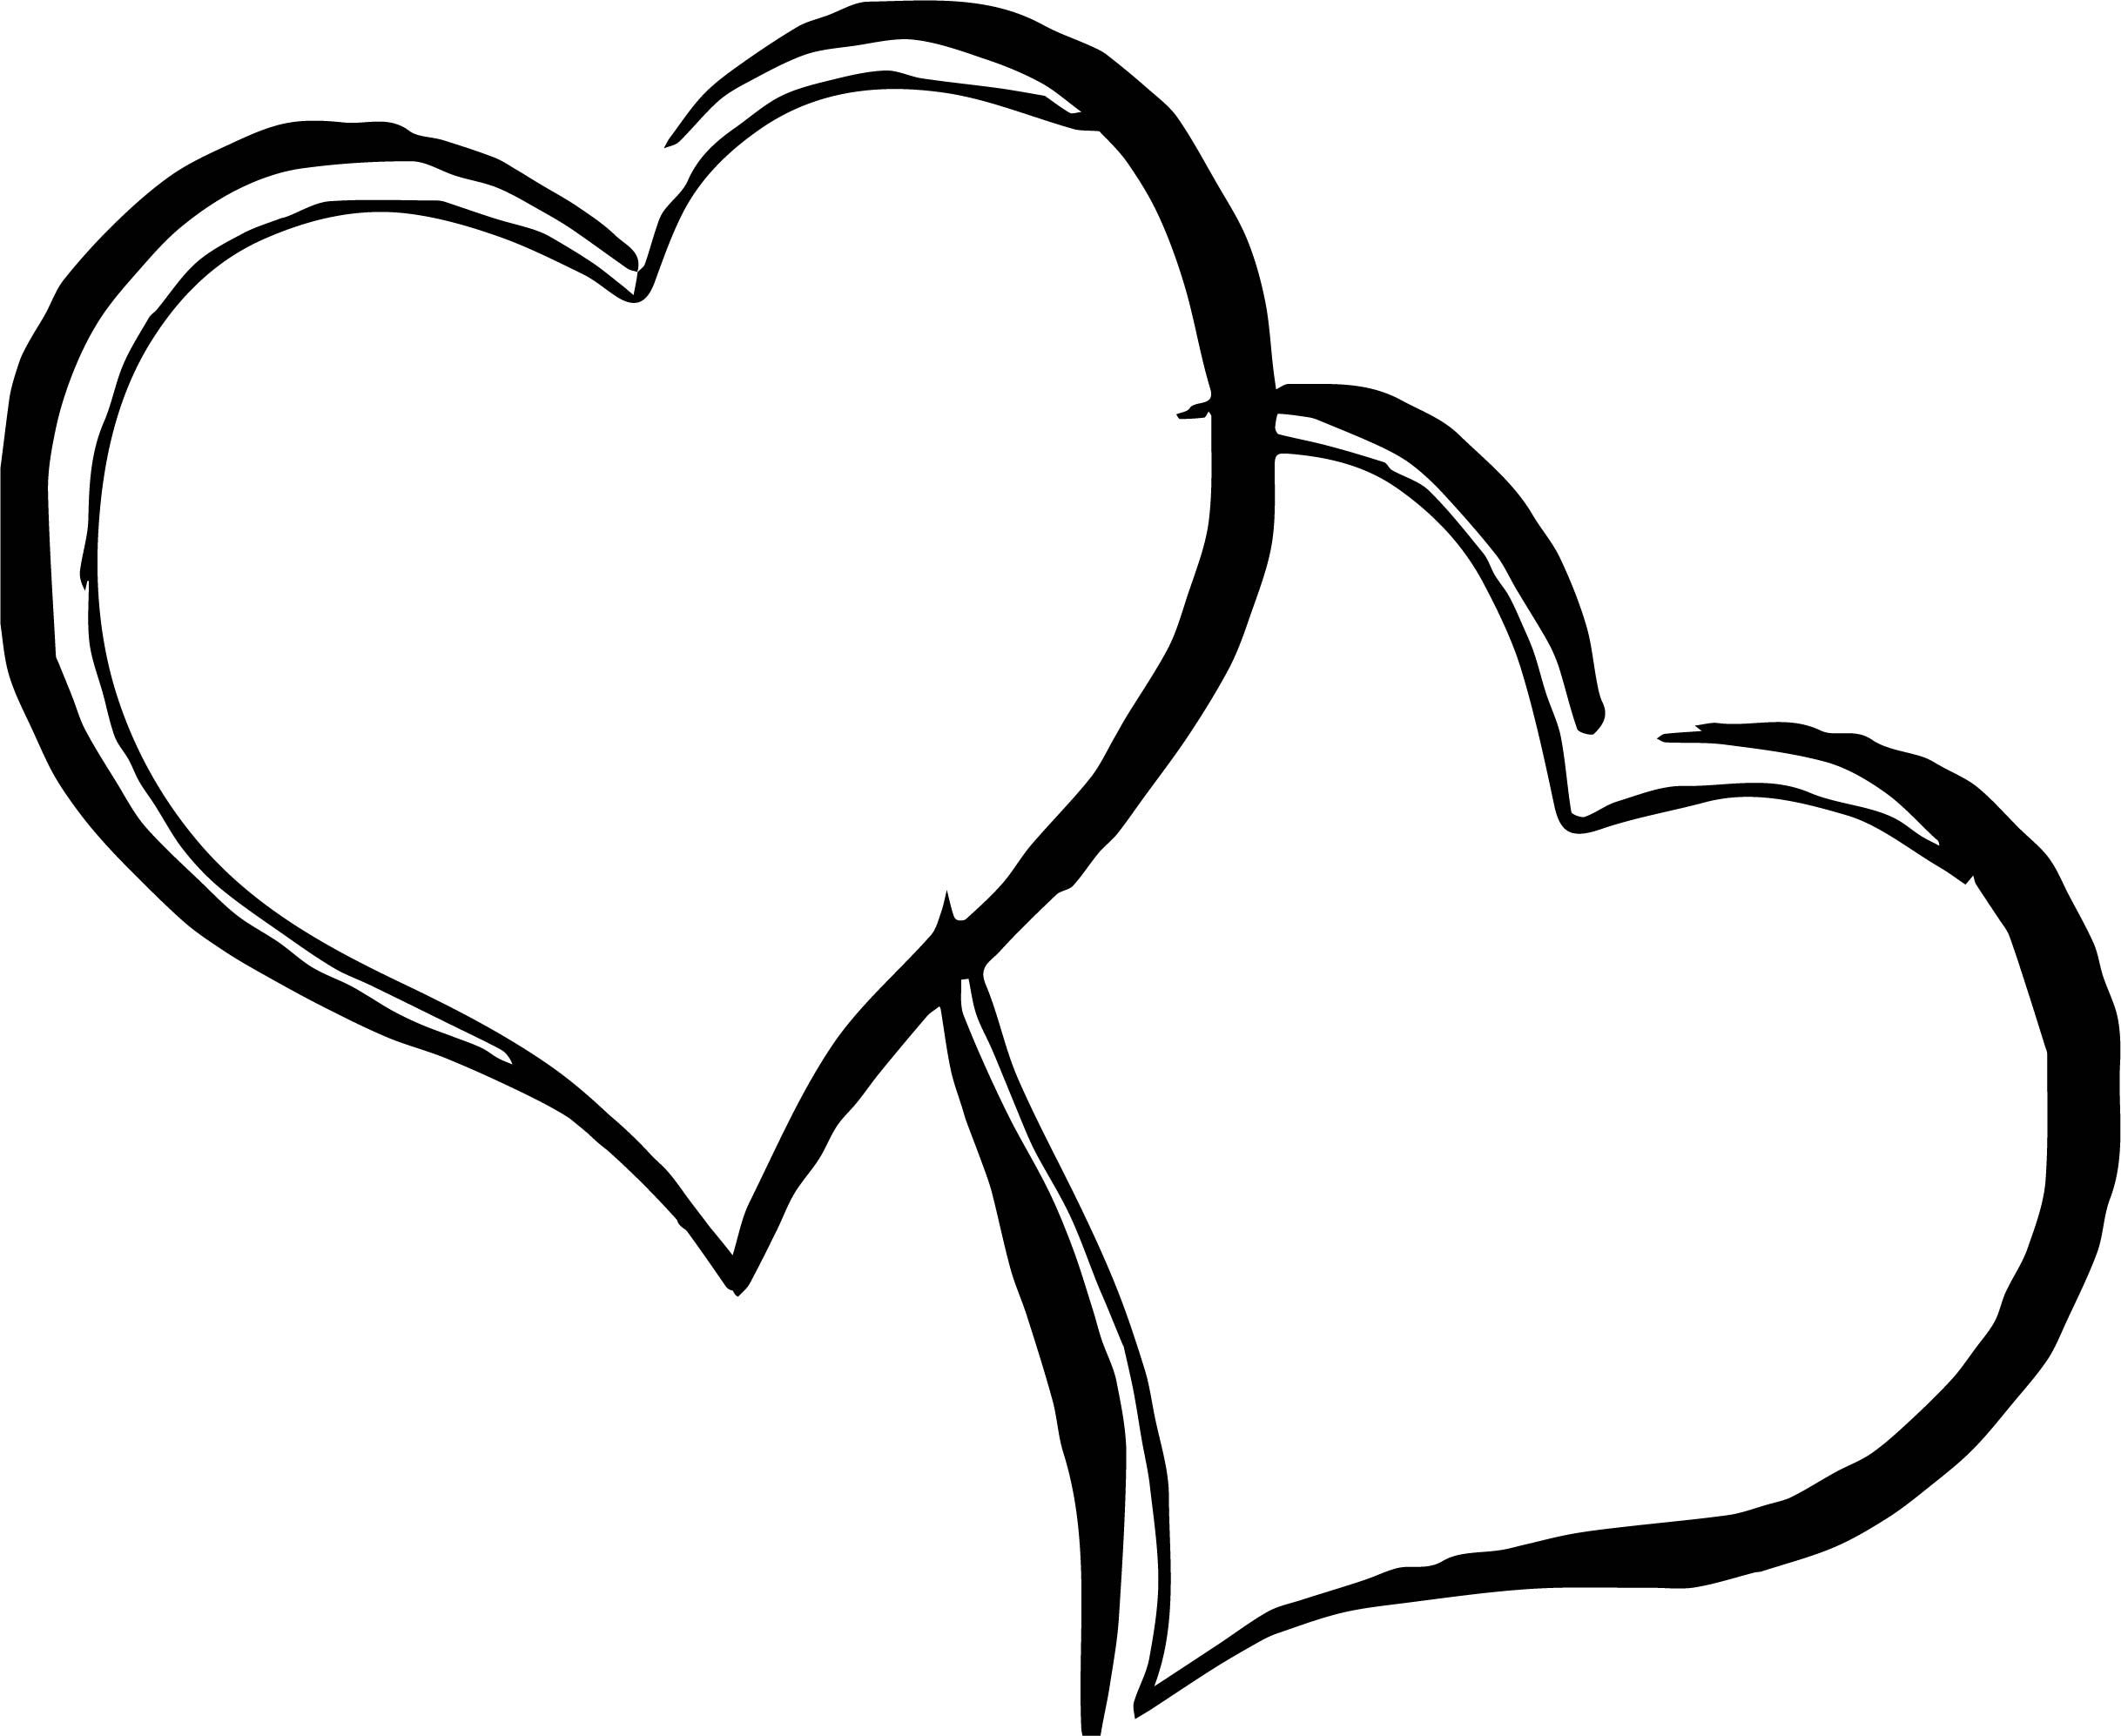 cool heart coloring pages free printable heart coloring pages for kids cool2bkids pages cool heart coloring